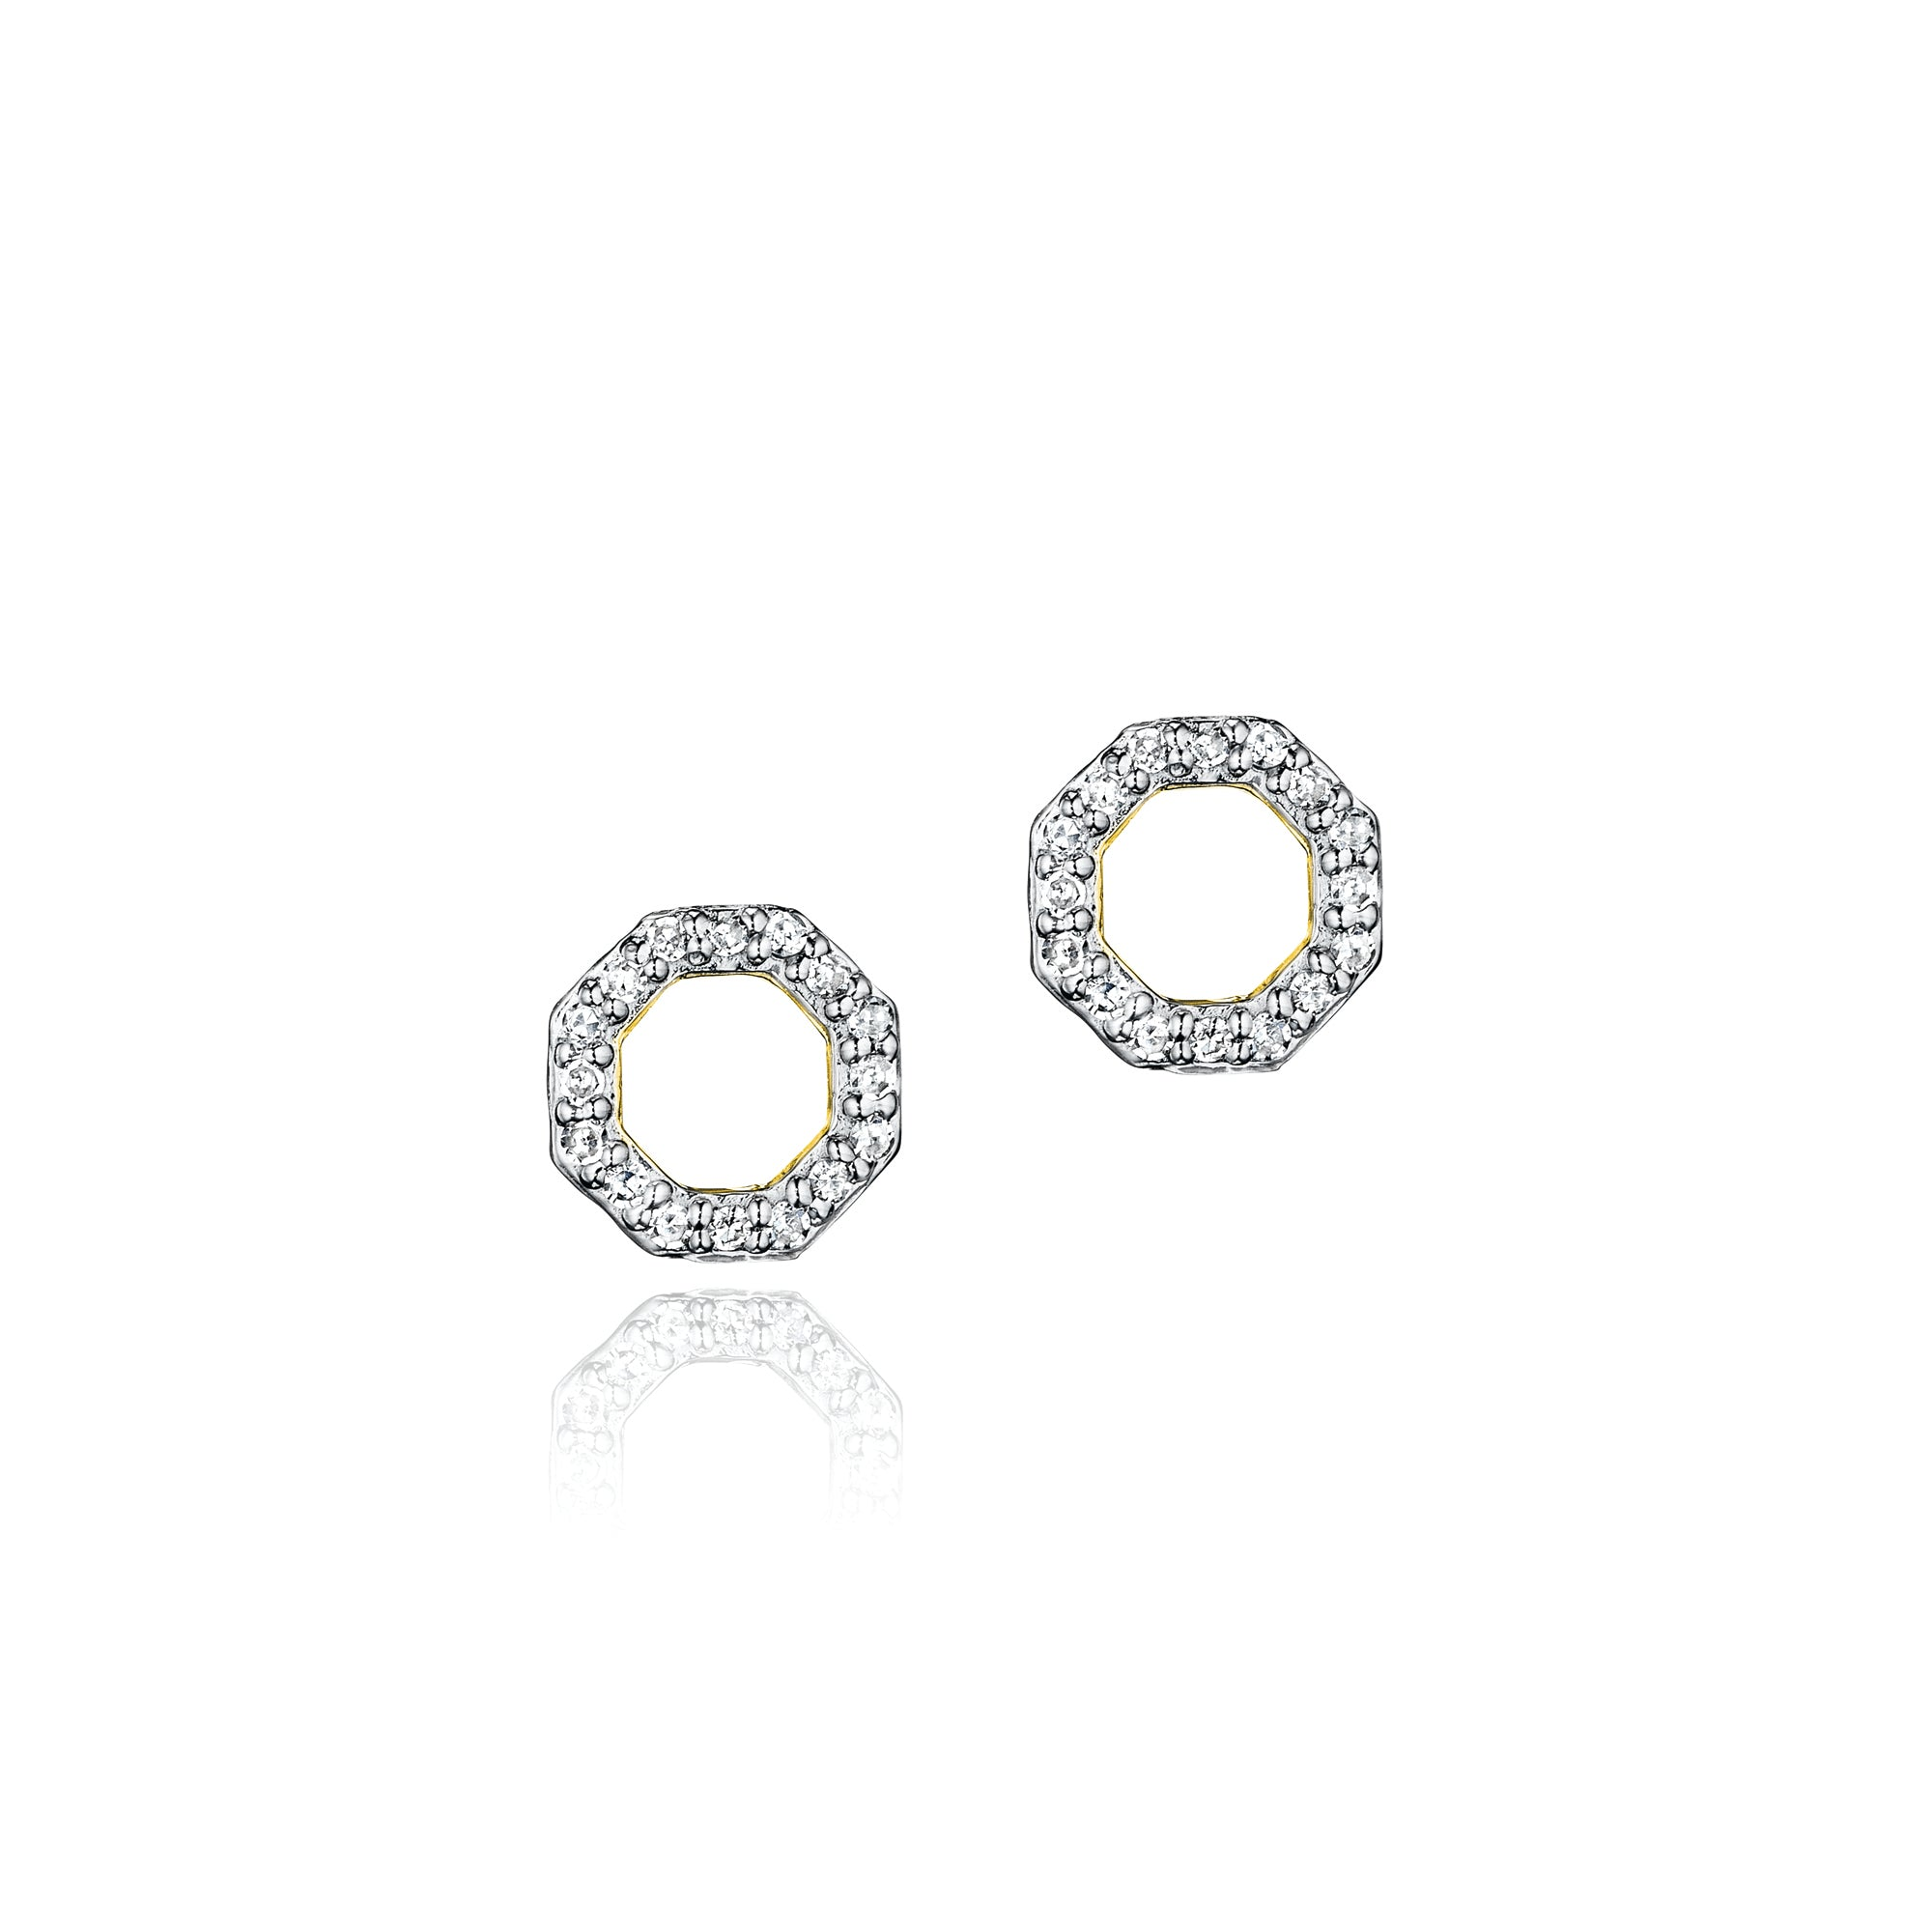 Phillips House small open hero gold and pave diamond stud earrings.